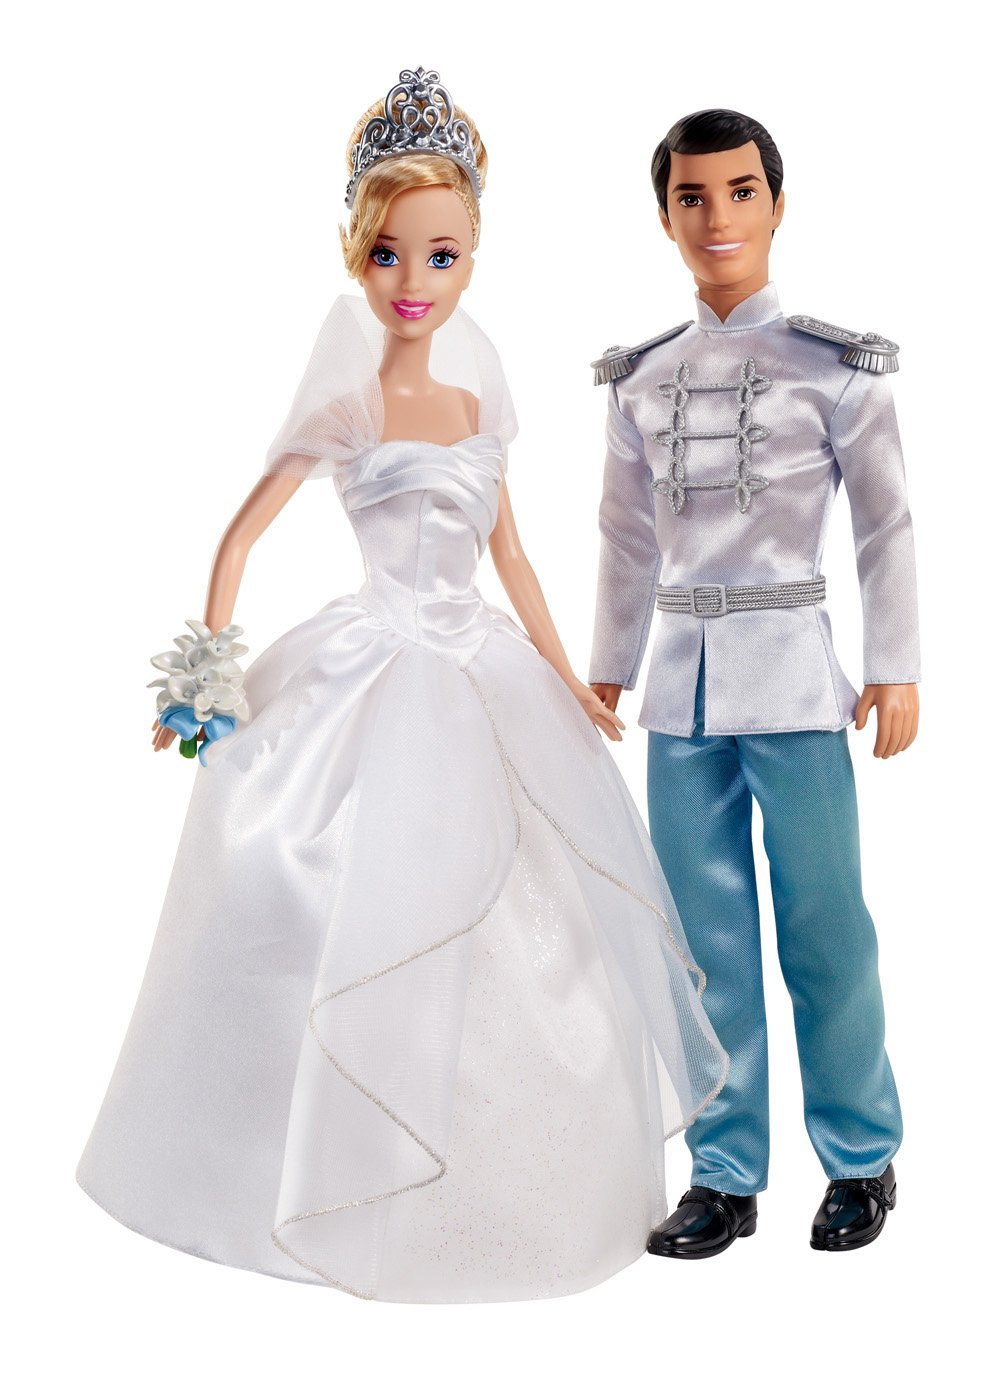 Amazon.com: Disney Princess Cinderella Fairytale Wedding Giftset ...